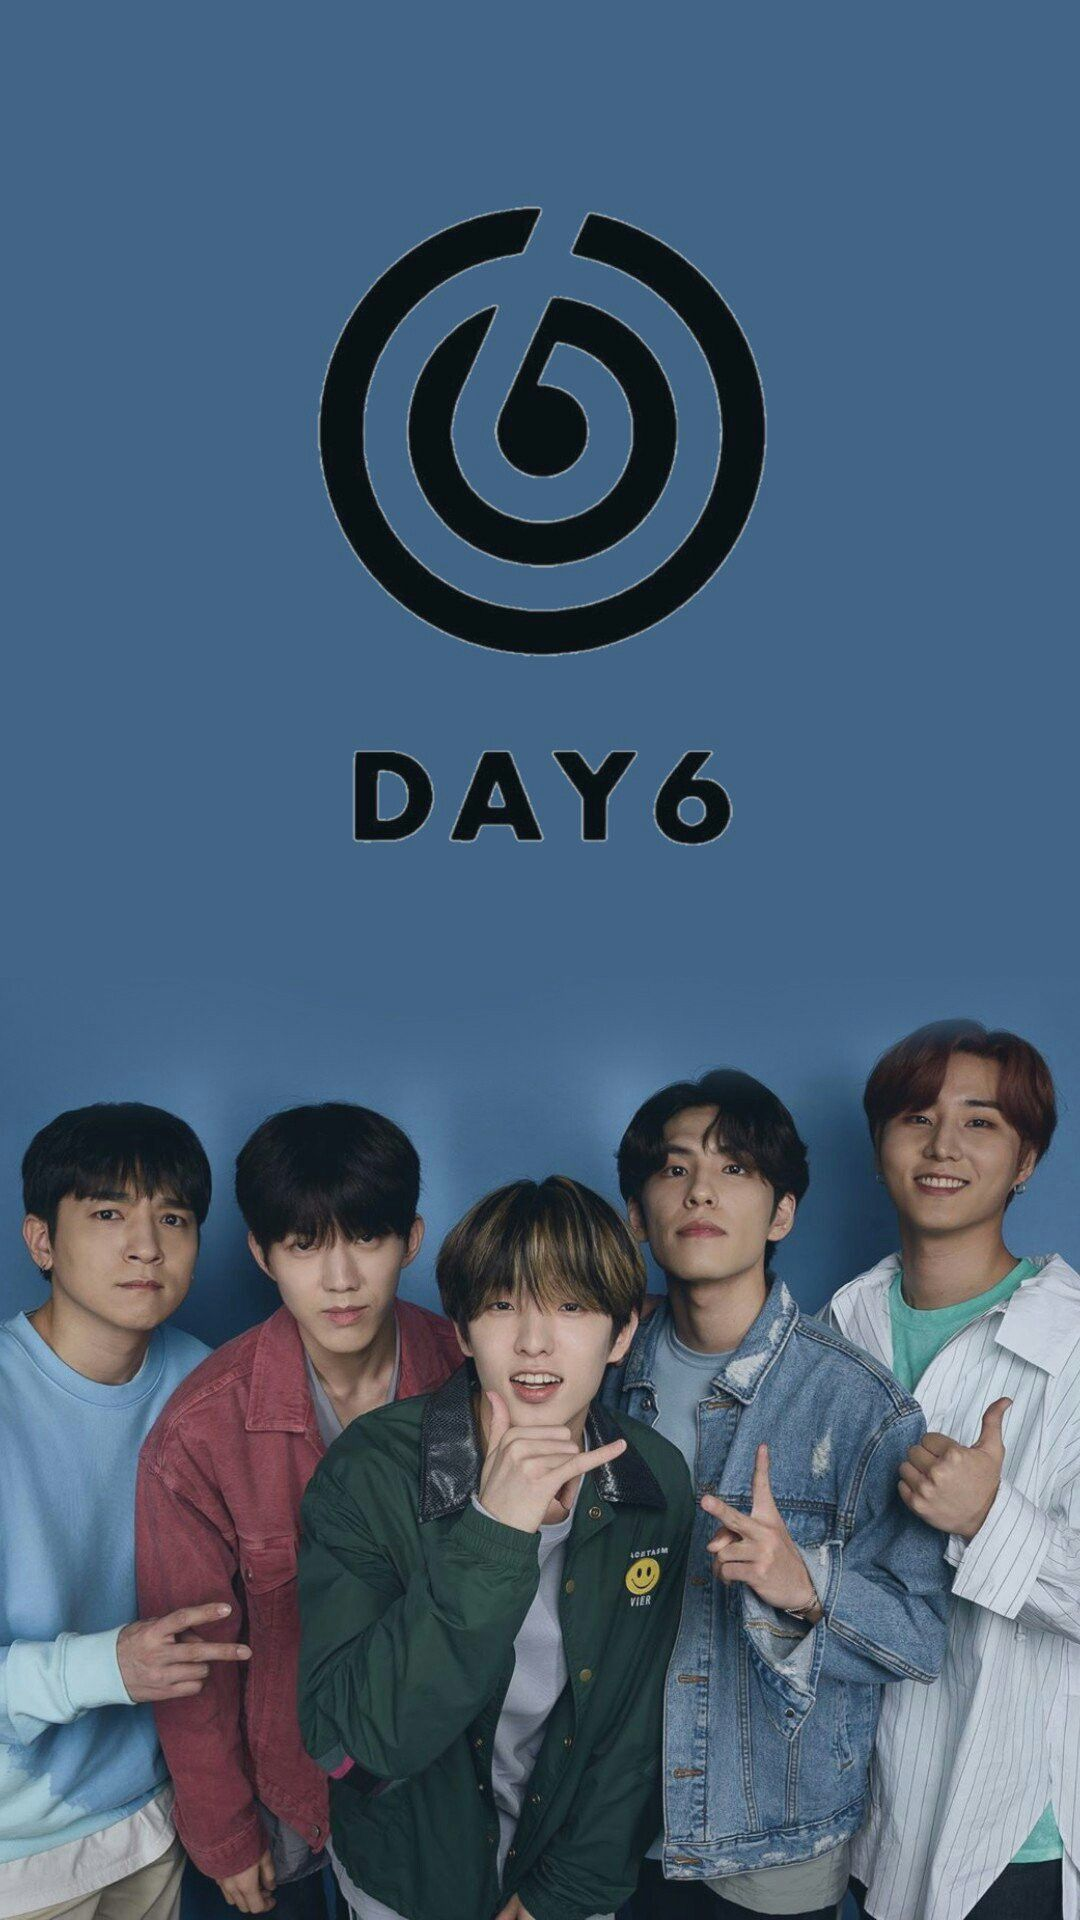 190911 Day6 BuildSeries